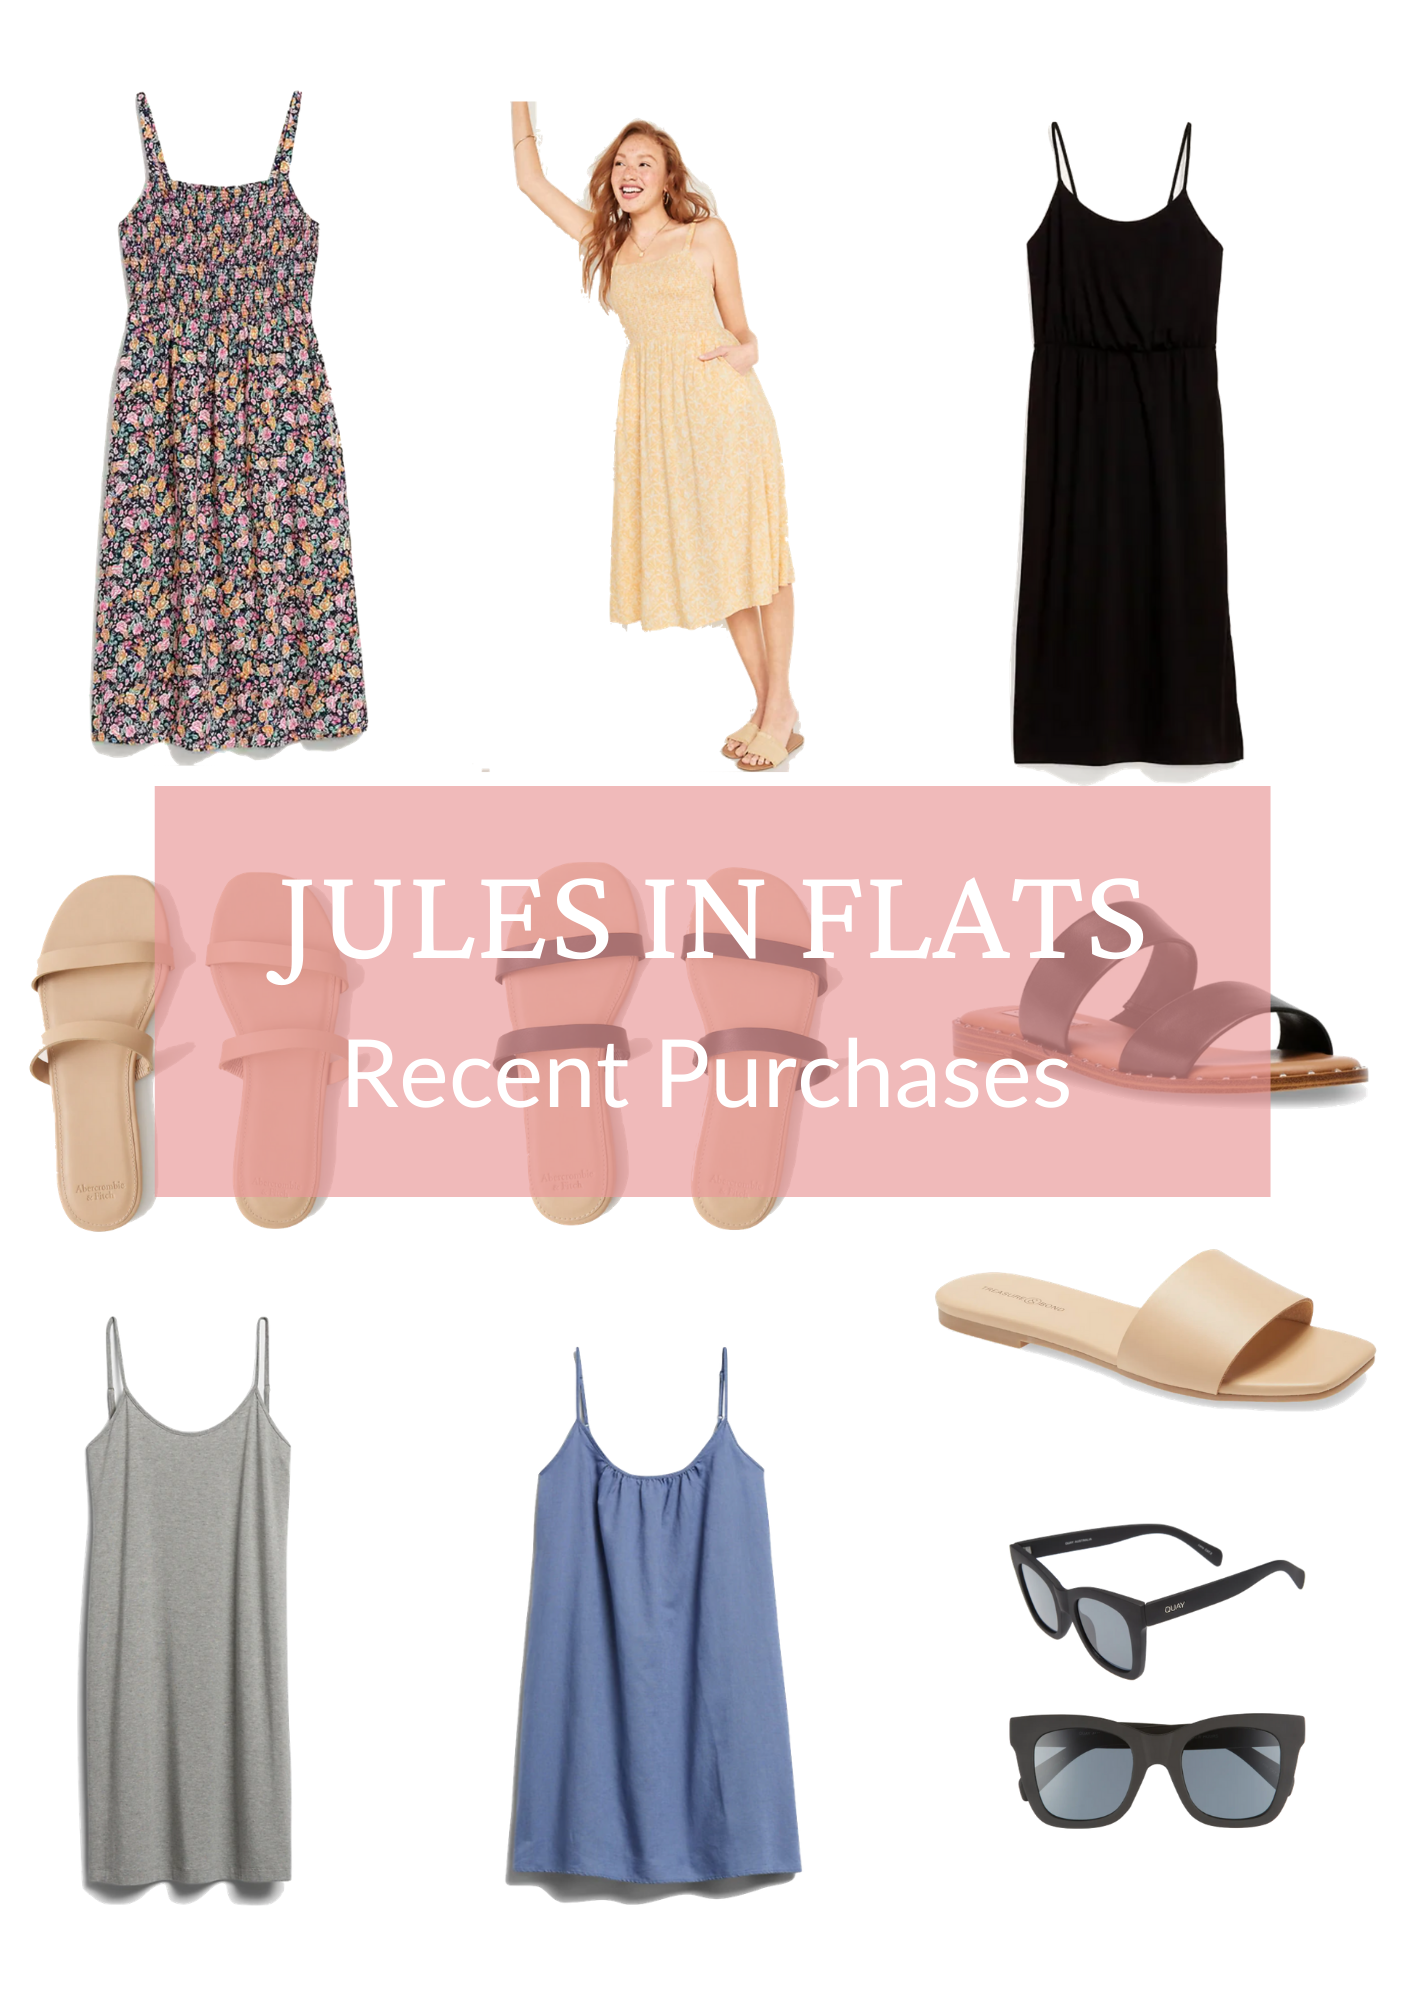 Jules in Flats - Recent Purchases June 2021